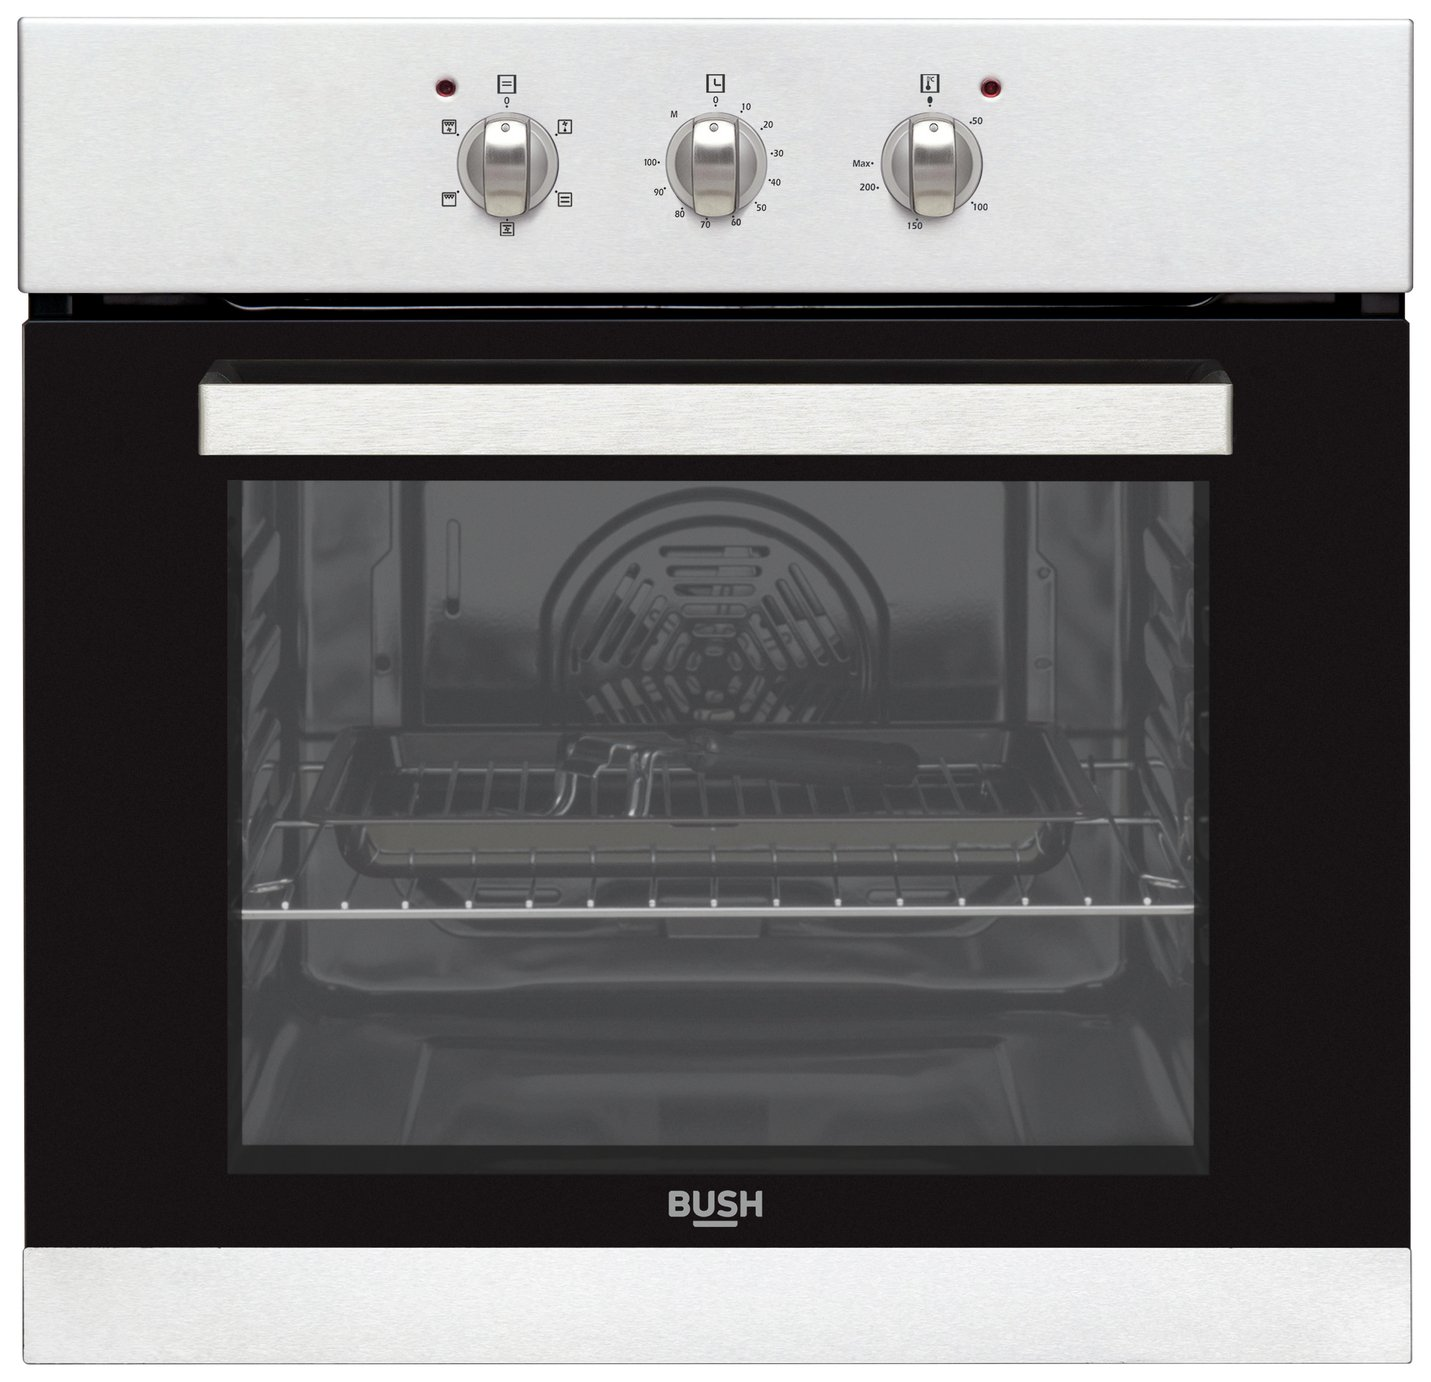 Bush BIBFOS Built In Single Electric Oven - Stainless Steel